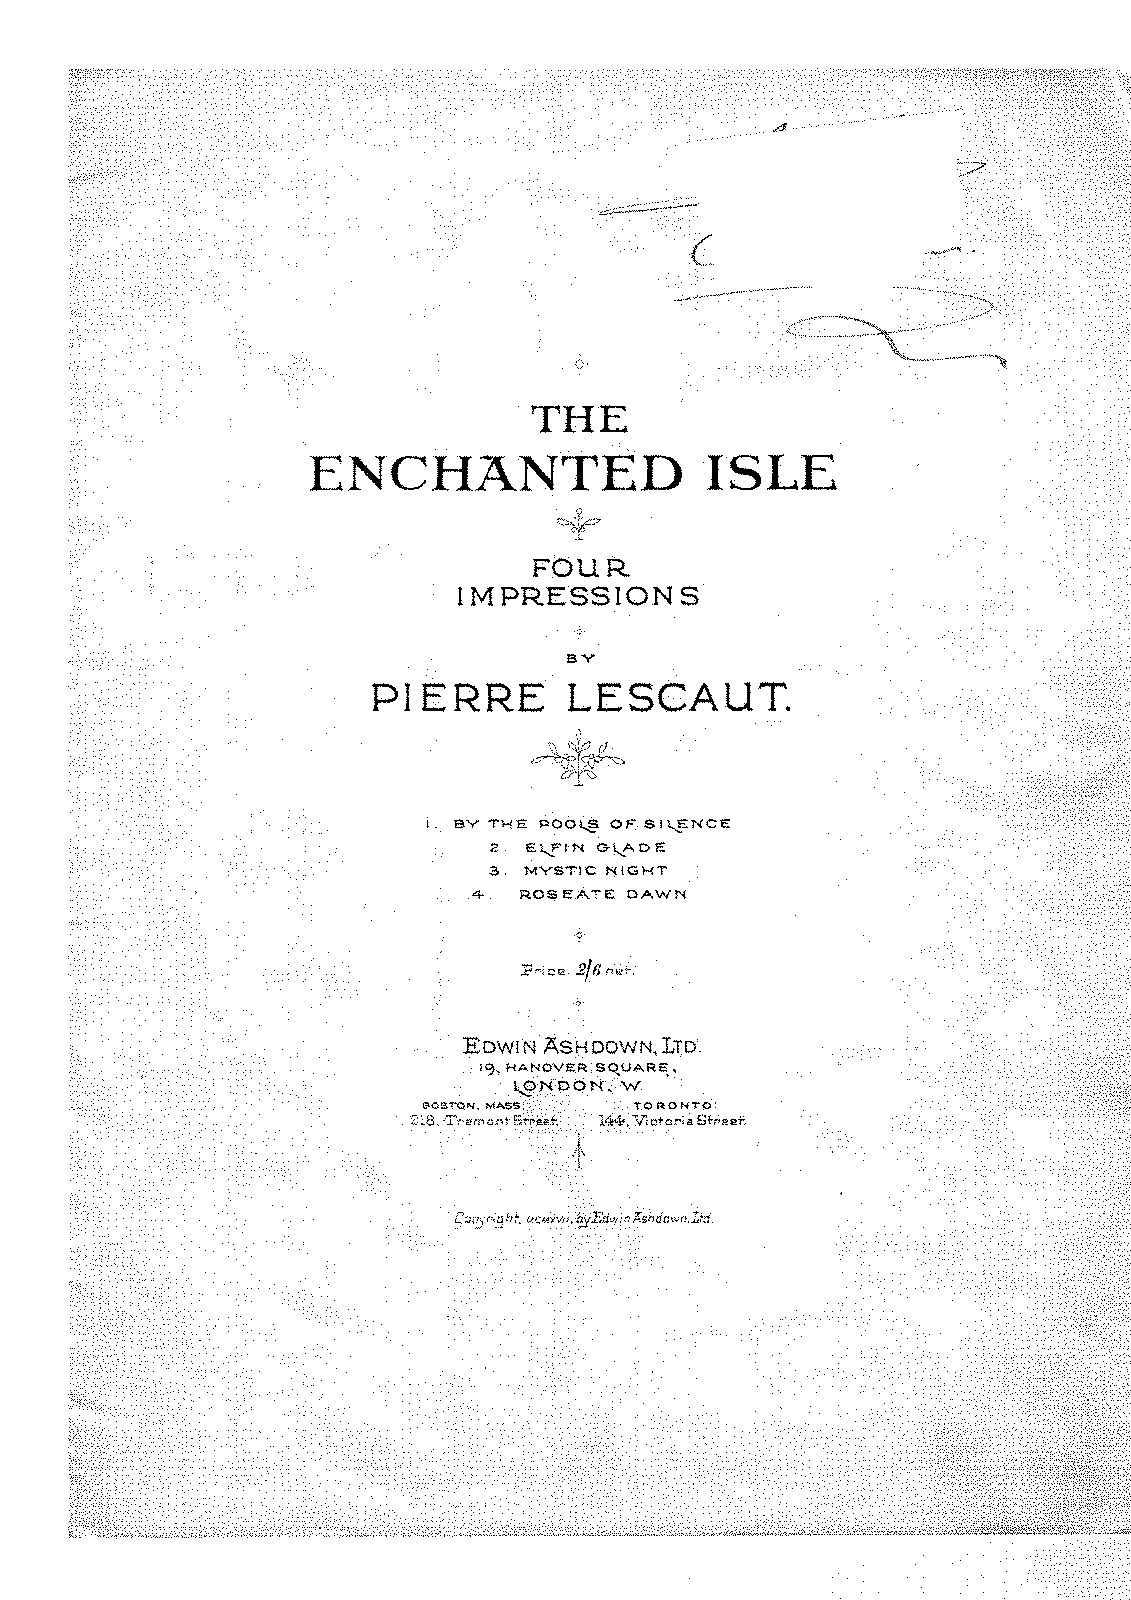 PMLP477517-The Enchanted Isle Lescaut.pdf